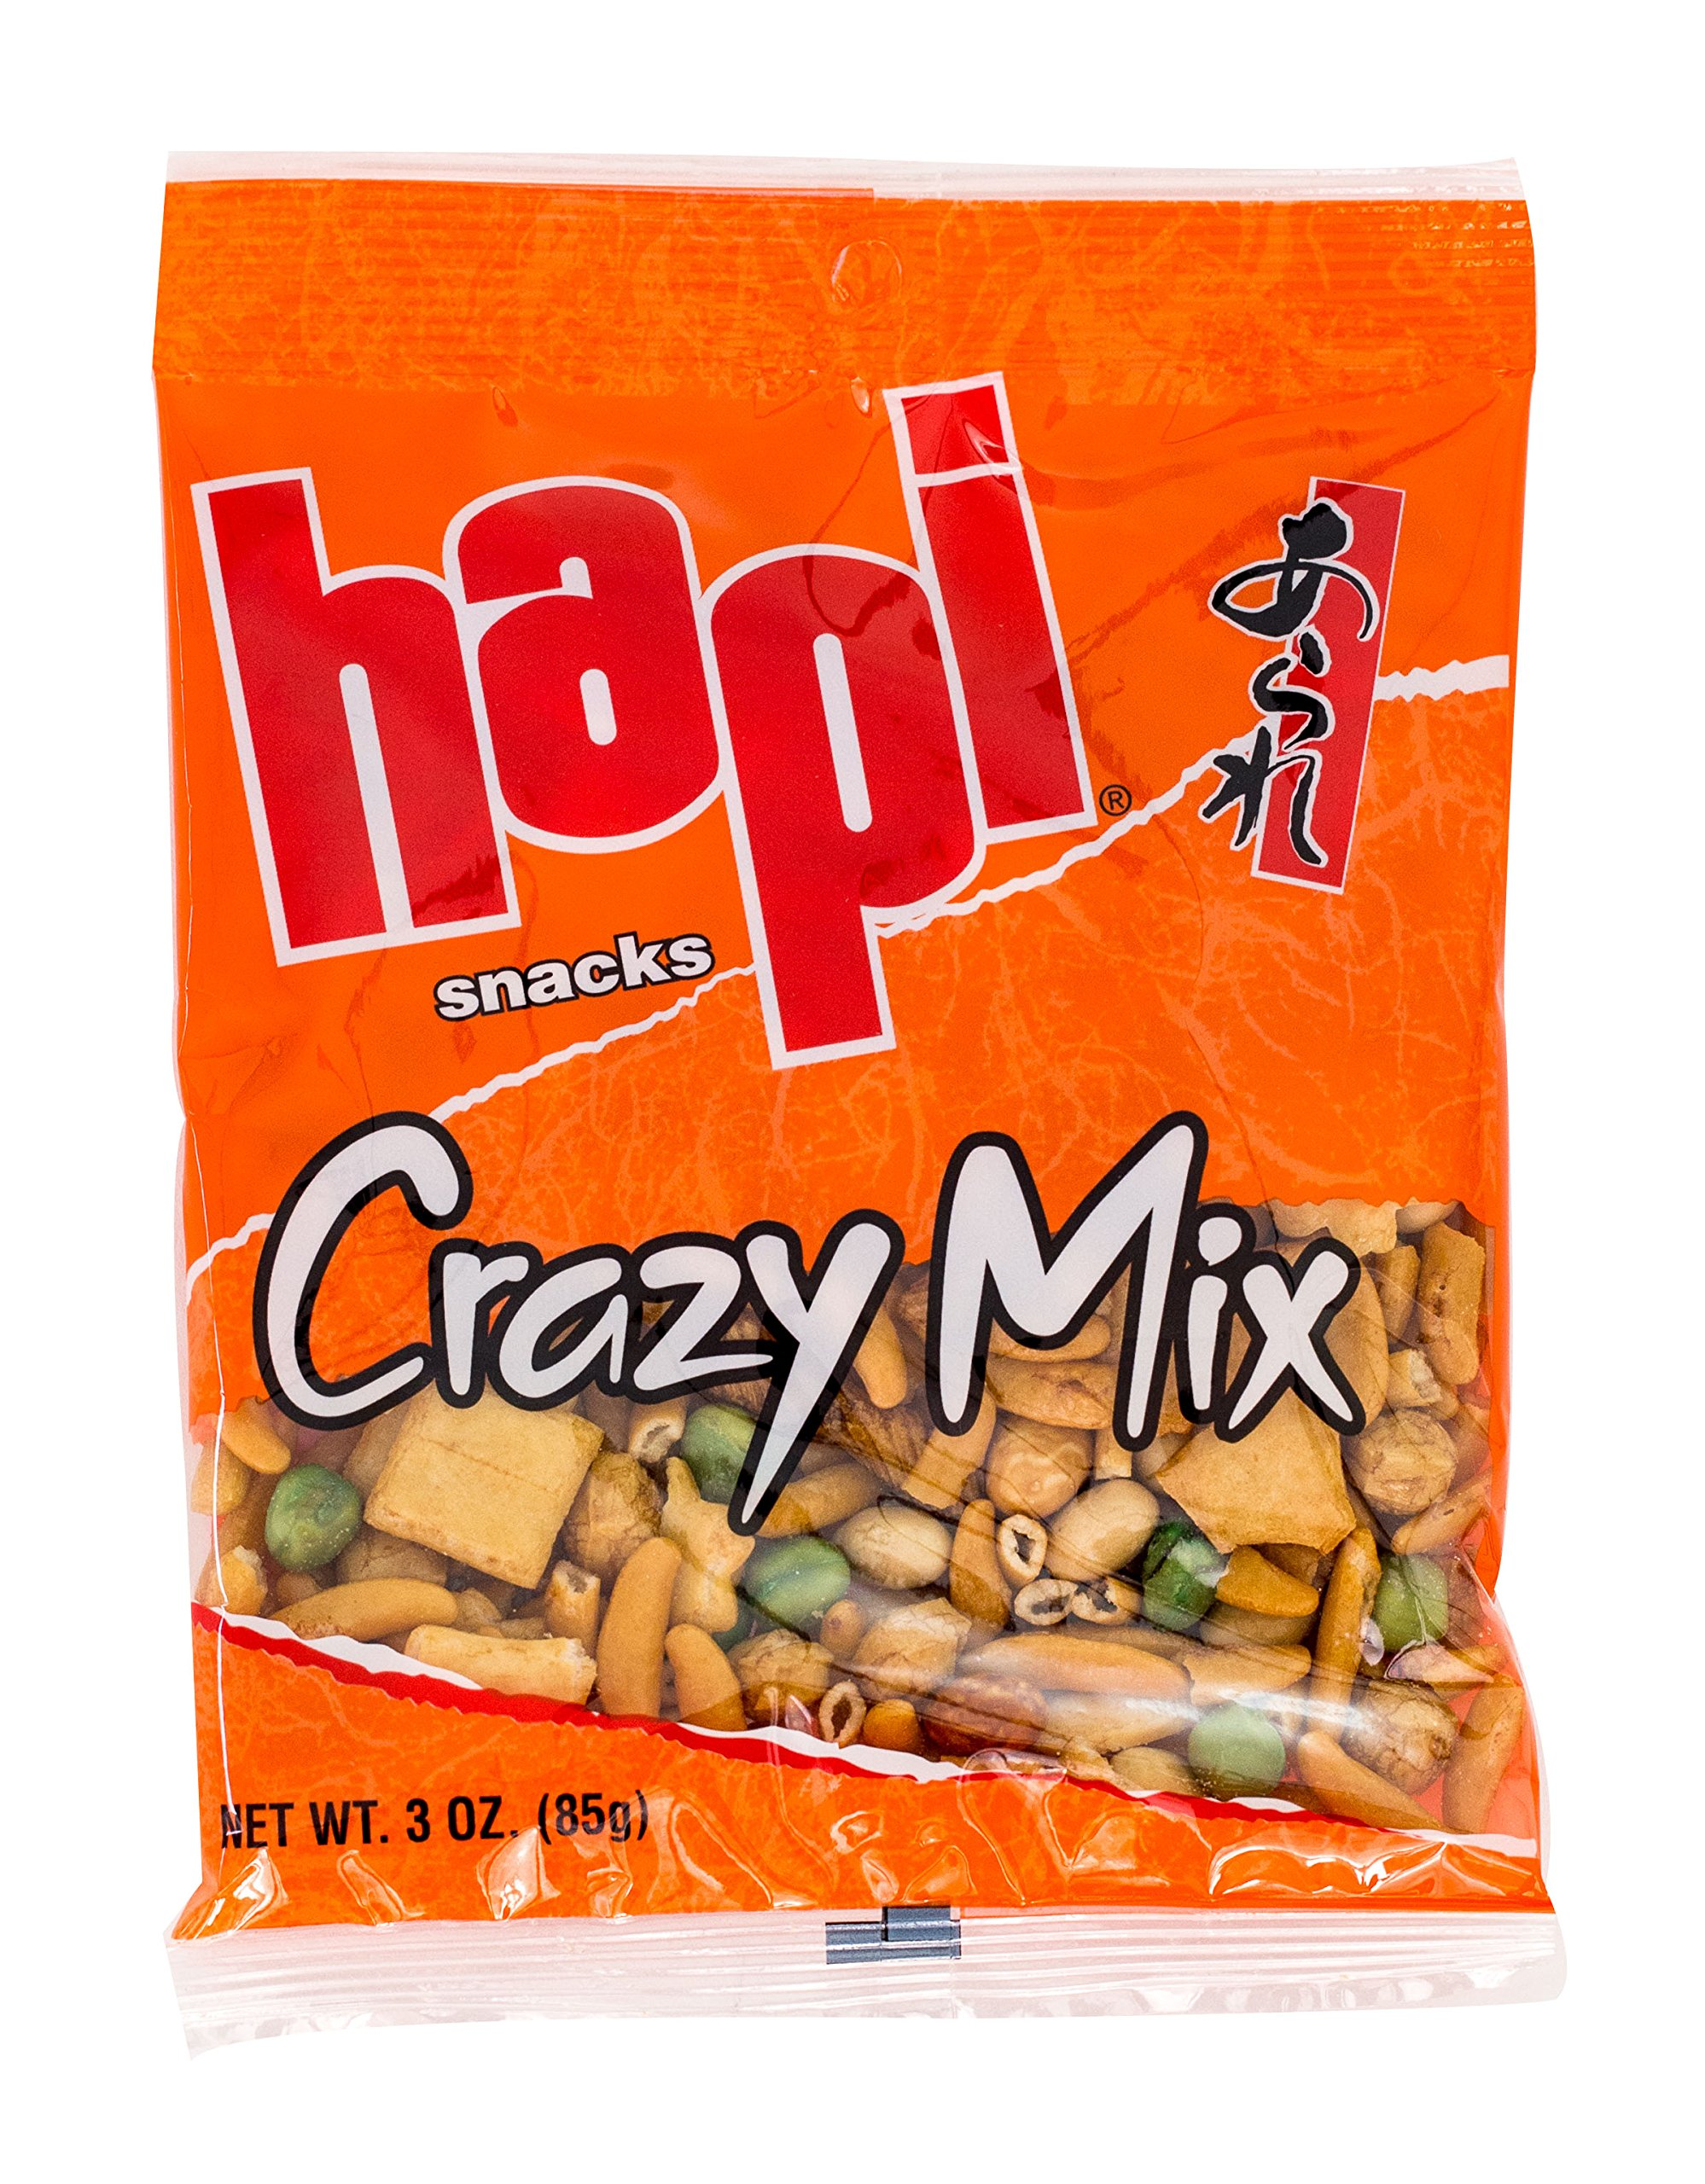 Hapi Crazy Mix Rice Crackers, 3-Ounce Bags (Pack of 12) by HAPI (Image #1)